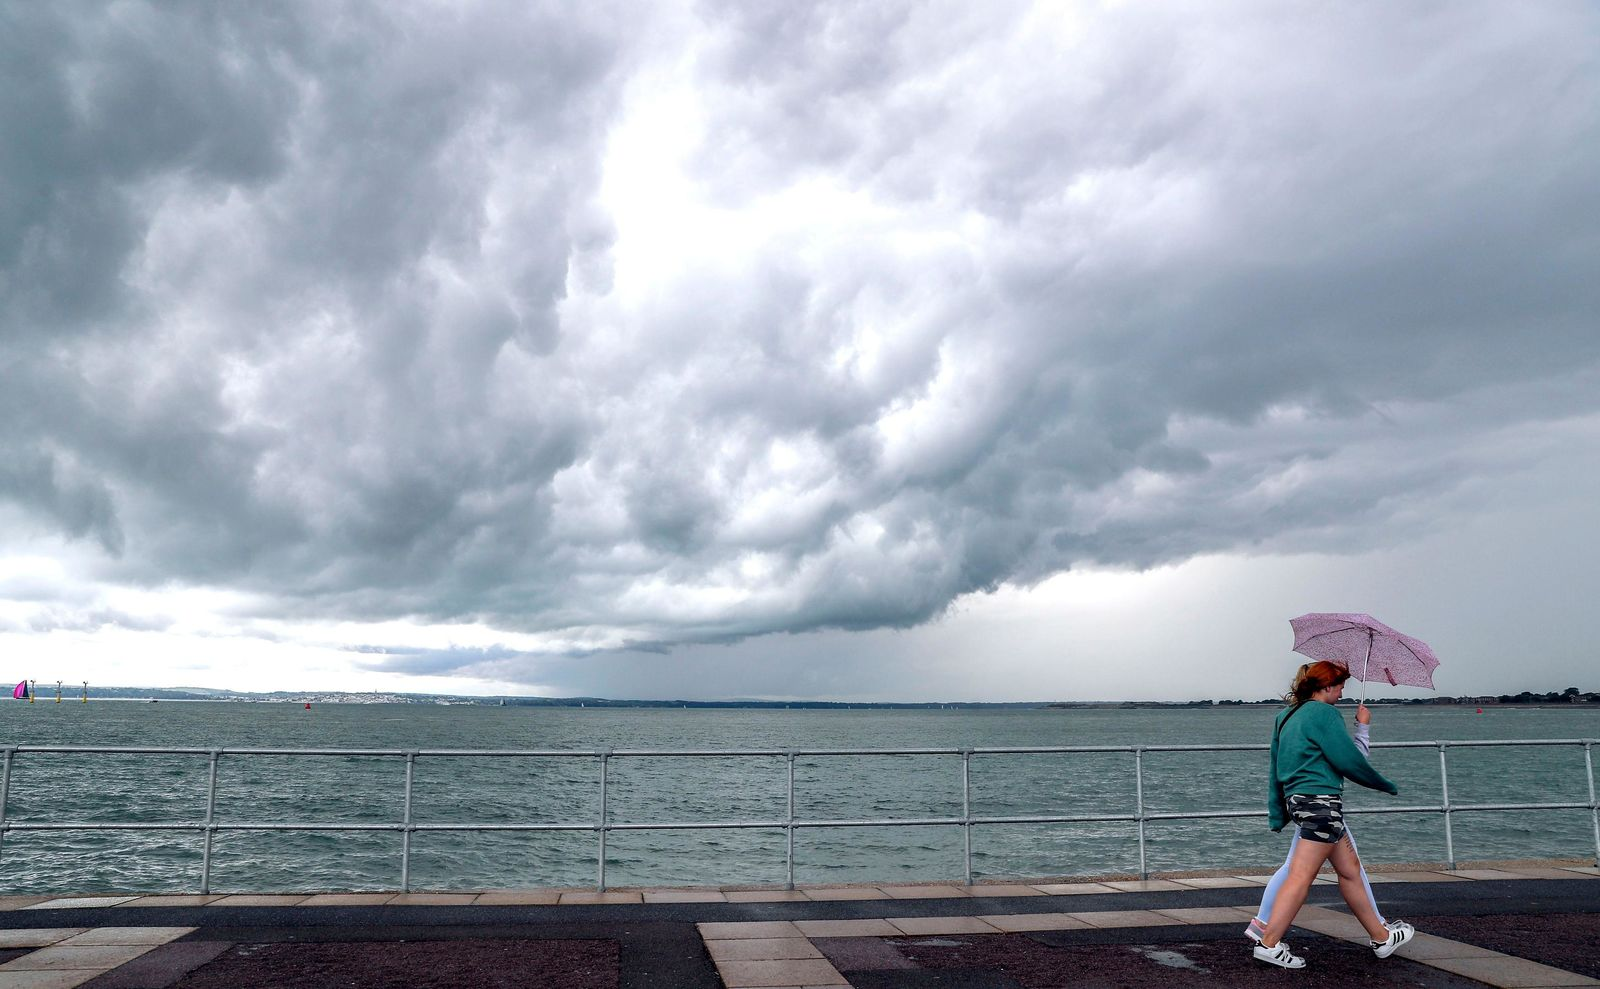 Women walk by the pier as rain clouds gather over the sea, in Southsea, Hampshire, England, Monday, Aug. 12, 2019. (Steve Parsons/PA via AP)